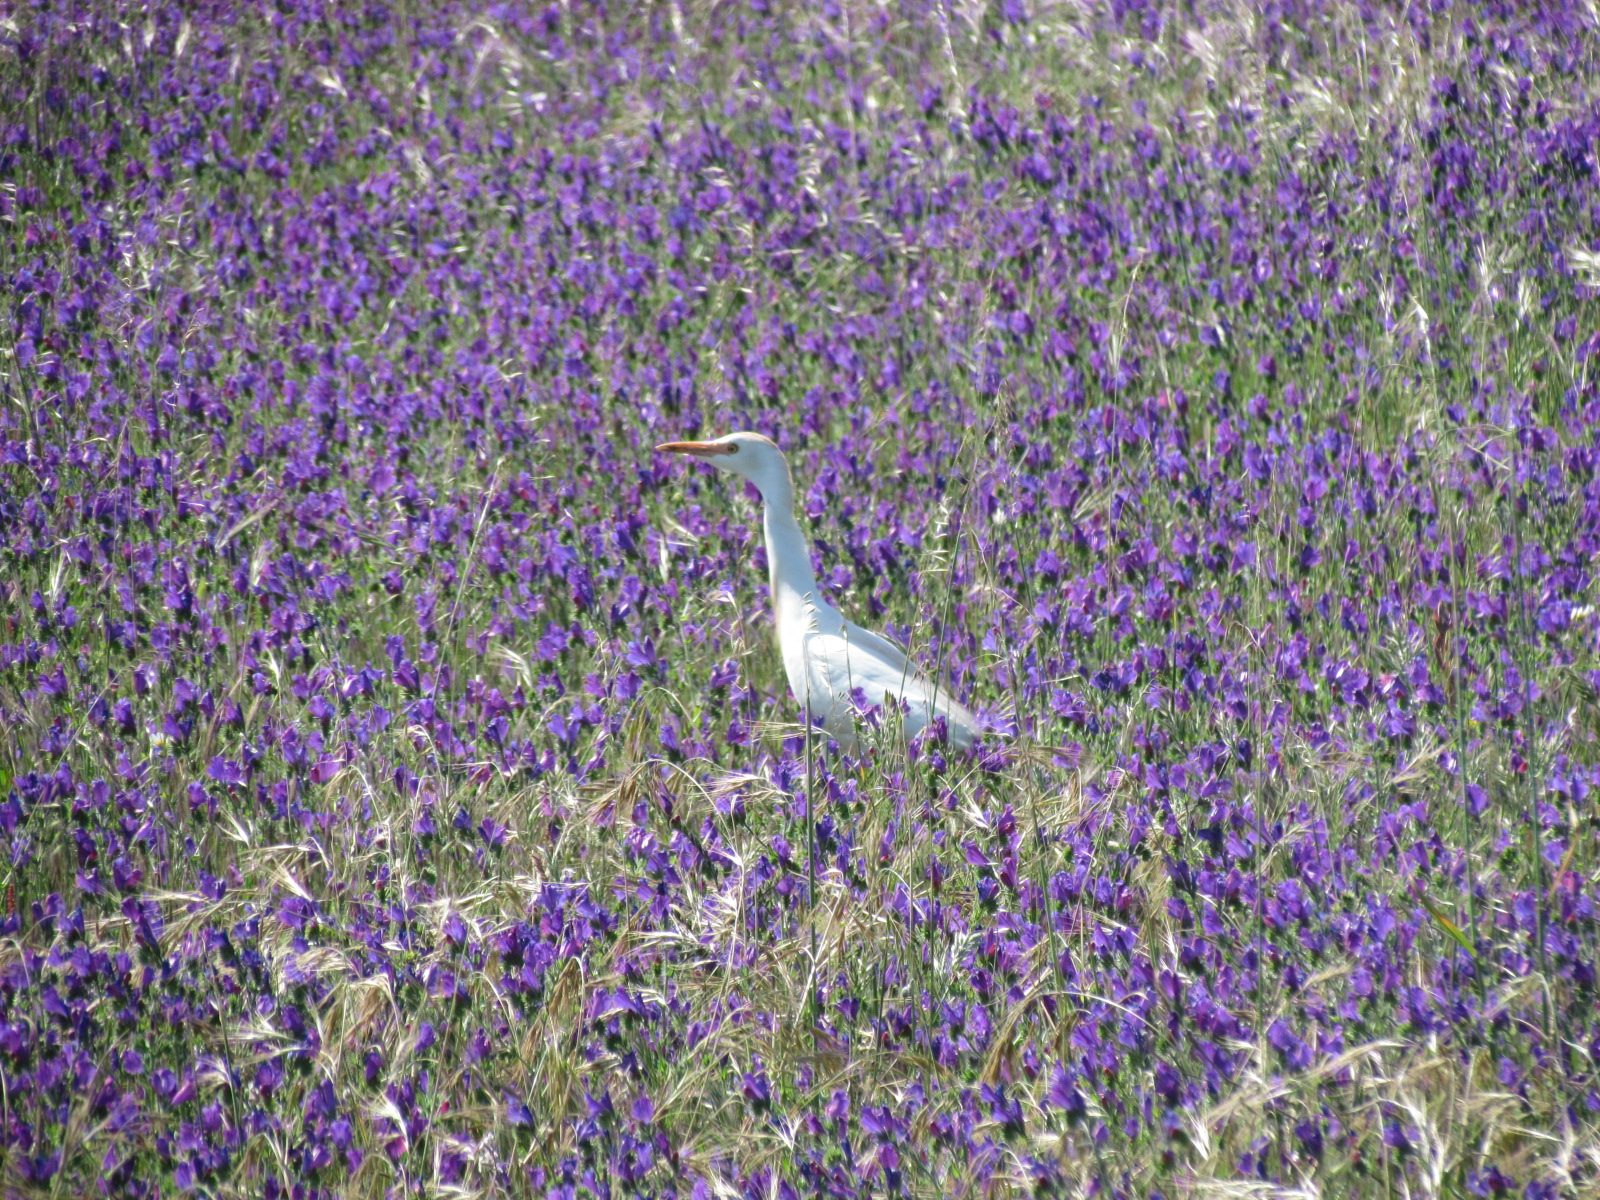 Cattle Egret in a field of purple flowers